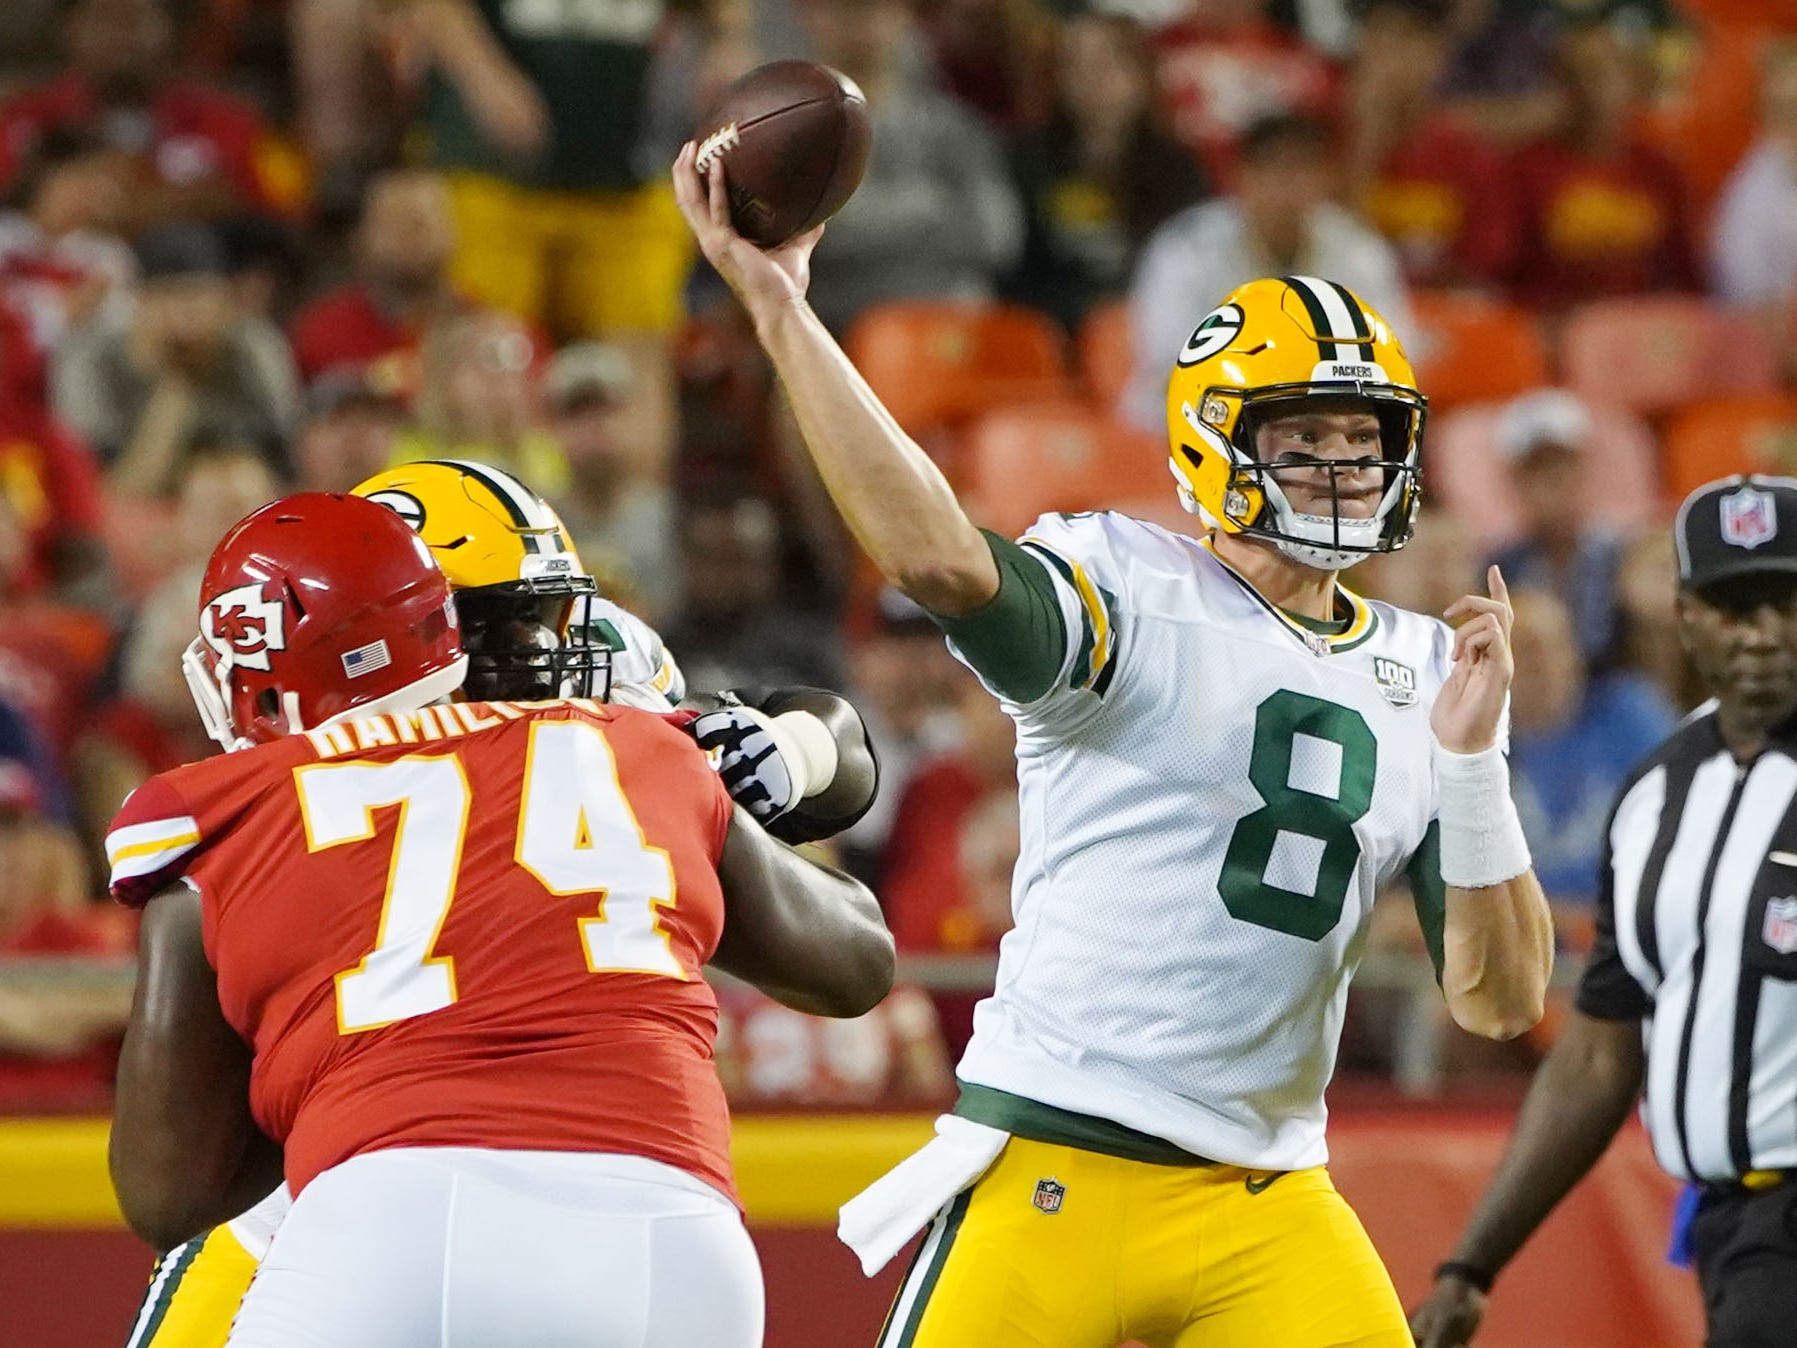 Aug 30, 2018; Kansas City, MO, USA; Green Bay Packers quarterback Tim Boyle (8) throws a pass against the Kansas City Chiefs in the first half at Arrowhead Stadium.